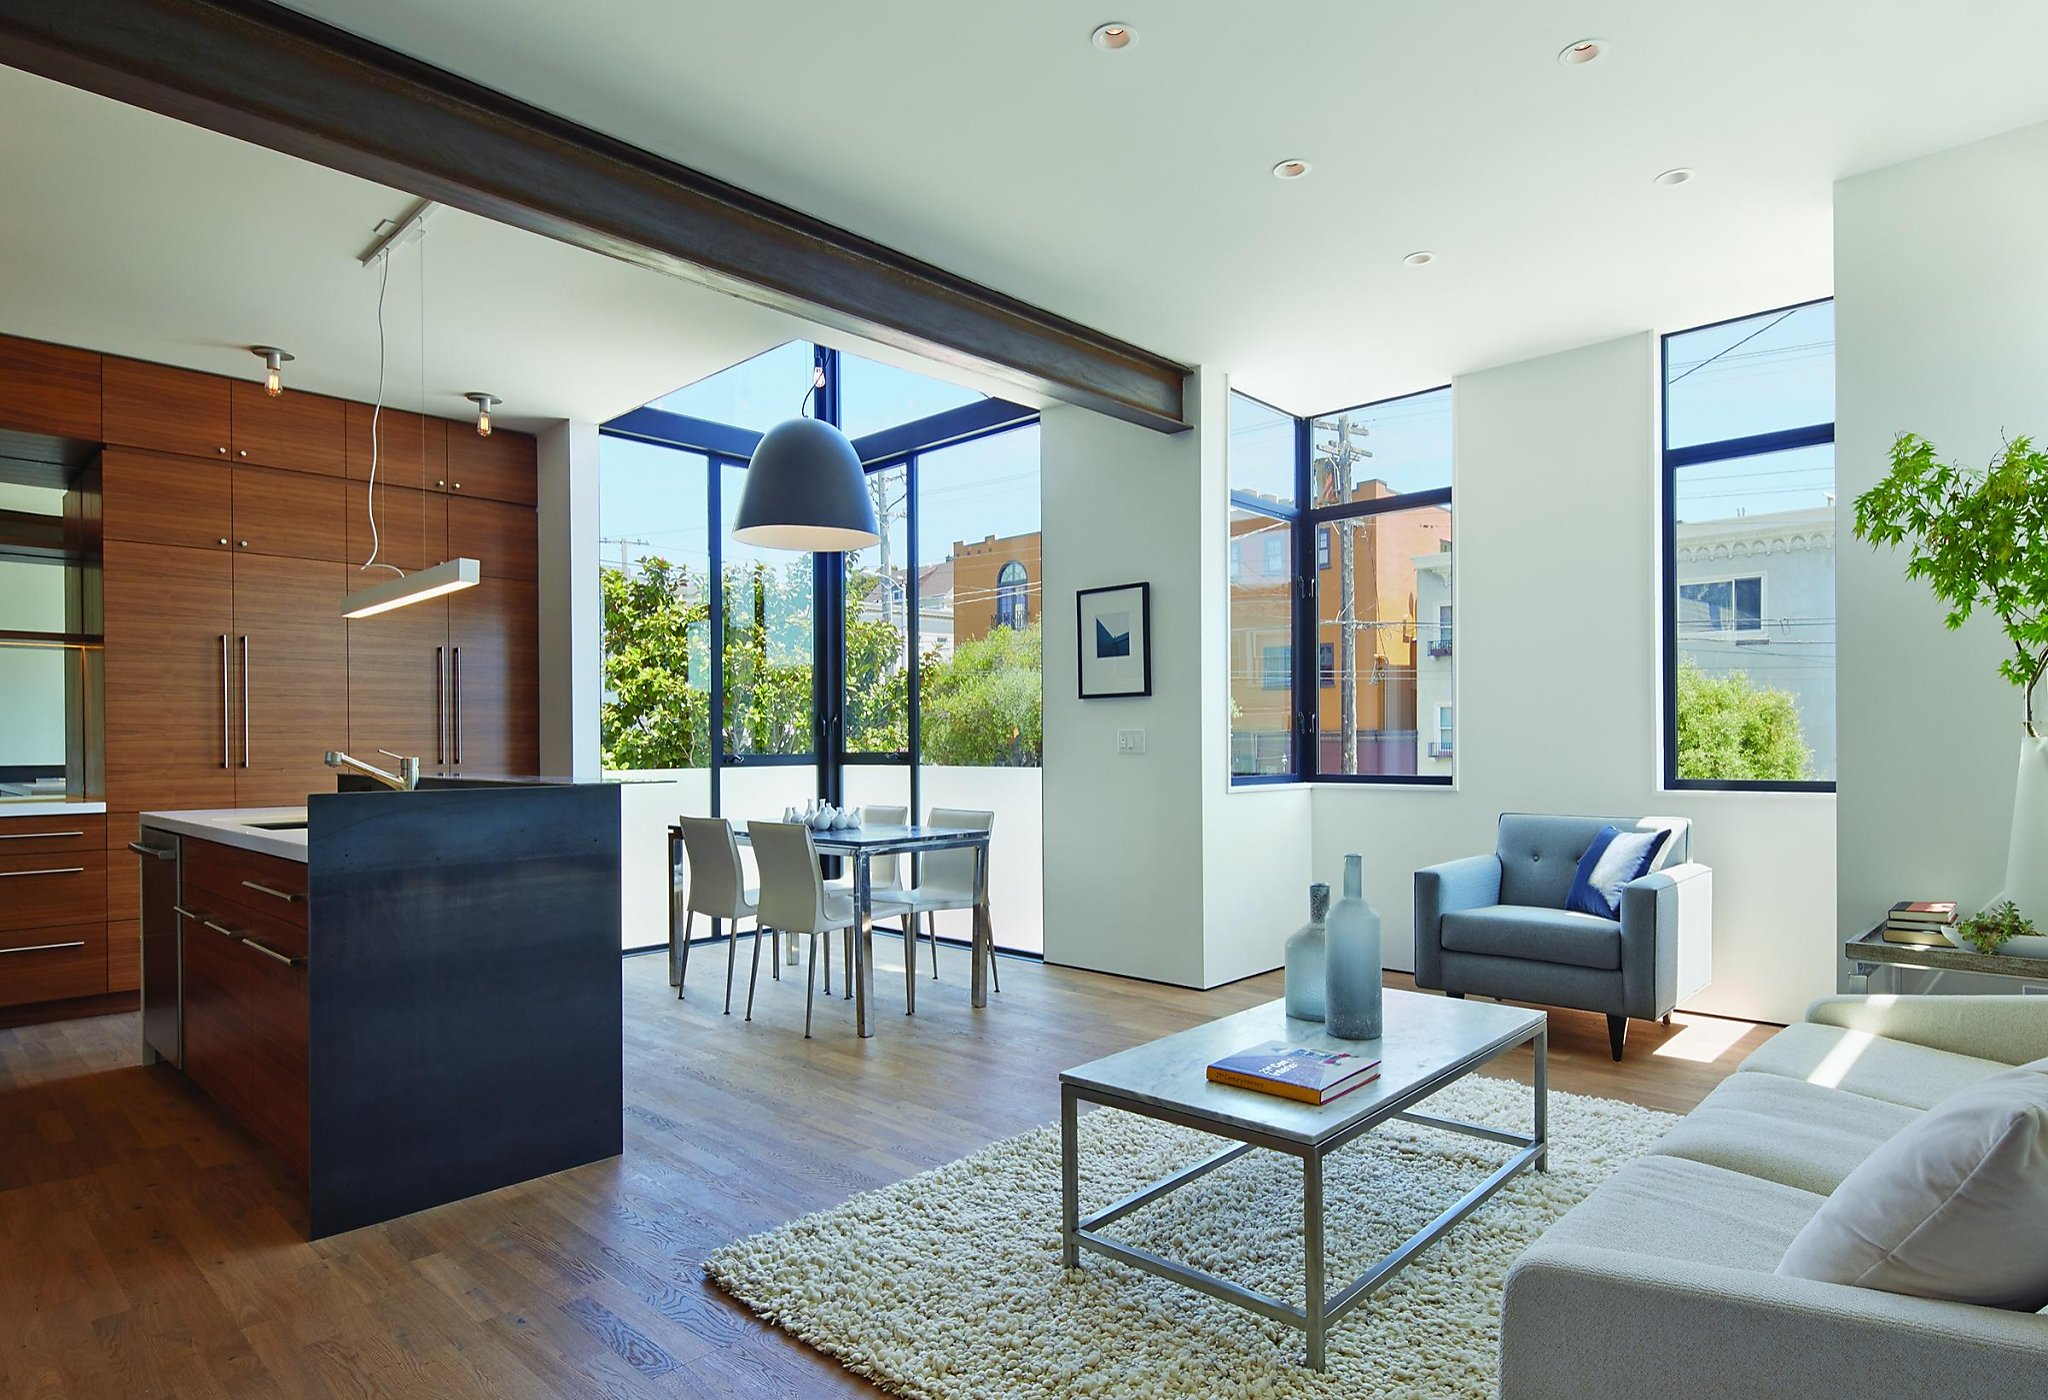 loose chair and sofa covers how to get pen ink out of leather bay area architects, designers build creatively under ...